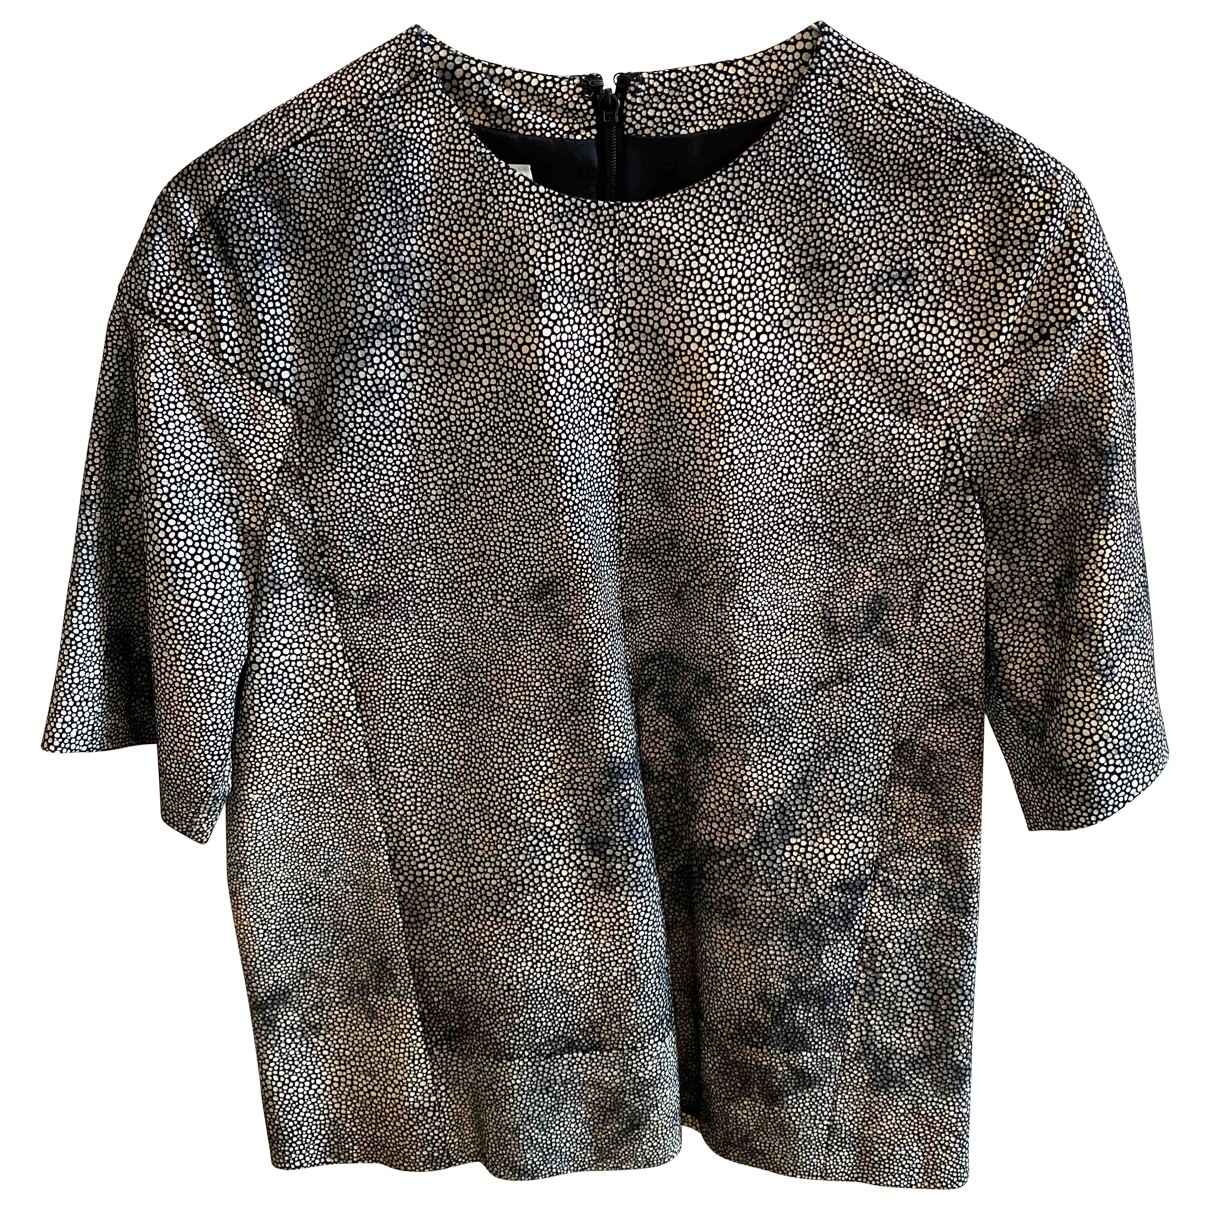 Mm6 \N Multicolour Leather  top for Women 38 IT